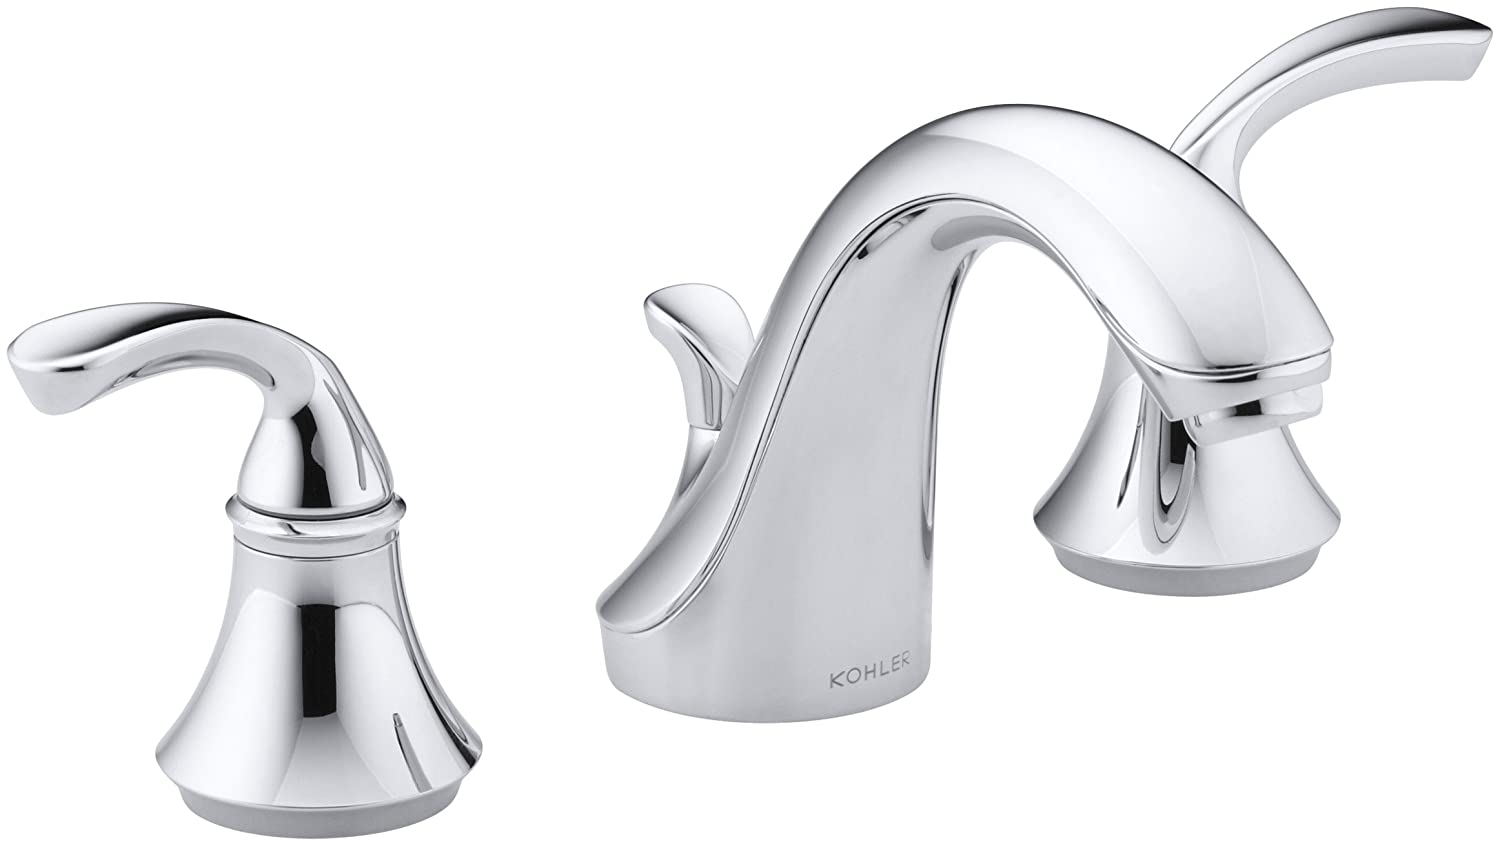 KOHLER K 10272 4 CP Forte Widespread Lavatory Faucet With Sculpted Lever  Handles, Polished Chrome   Touch On Bathroom Sink Faucets   Amazon.com